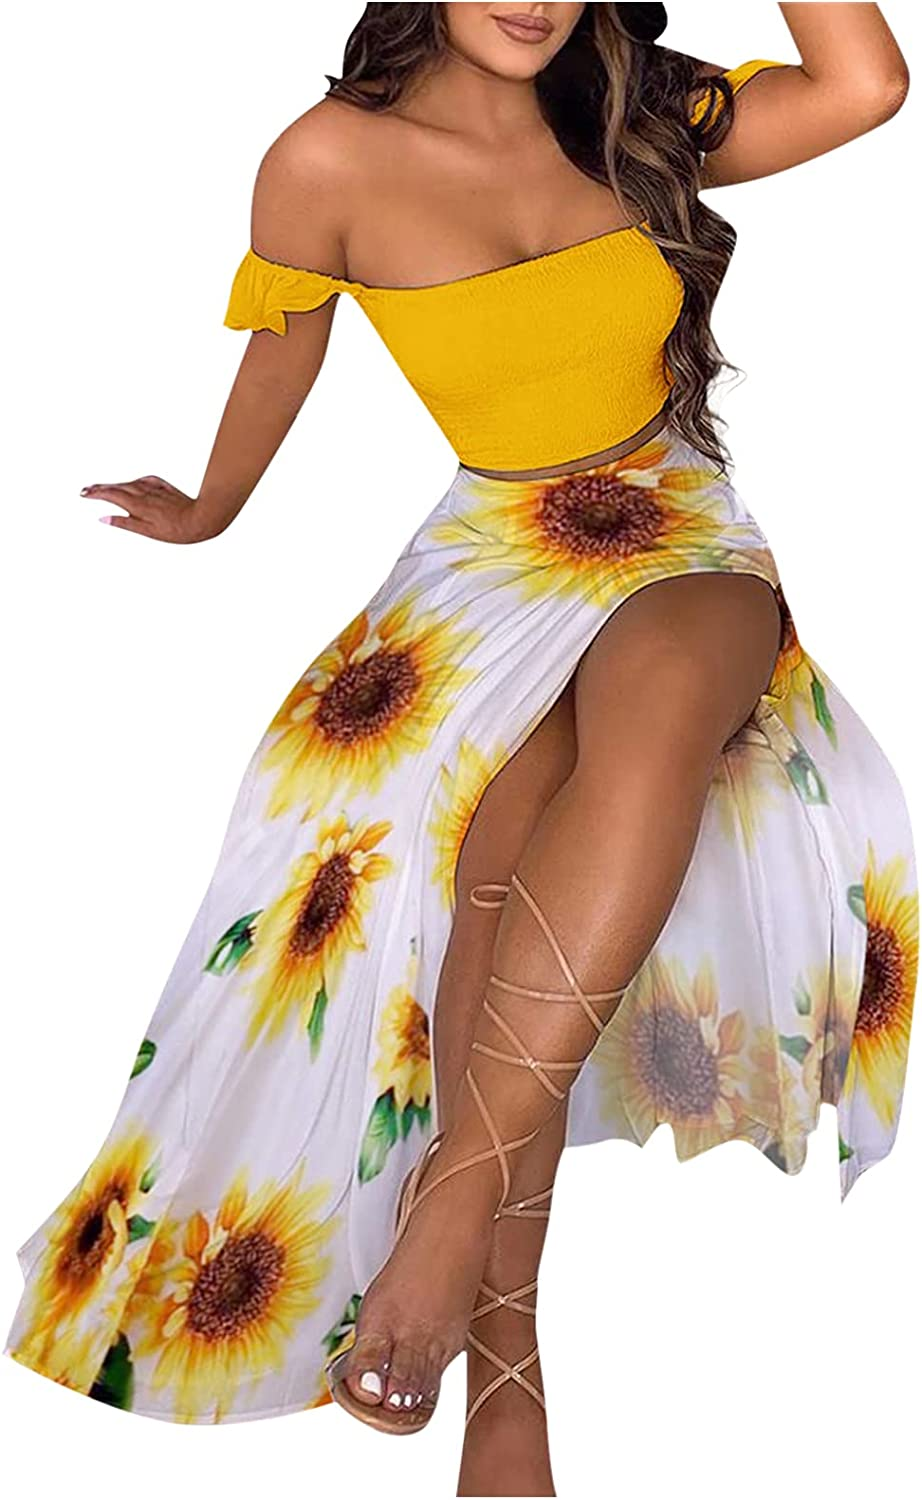 NMSL Women's Sexy Summer 2 Piece Maxi Chiffon Dress Crop Top Skirt Set Beachwear Cover Up Off Shoulder Boho Outfits Solid Color Side Slit Skirt Dress for Vacation Birthday Party Yellow A04 L